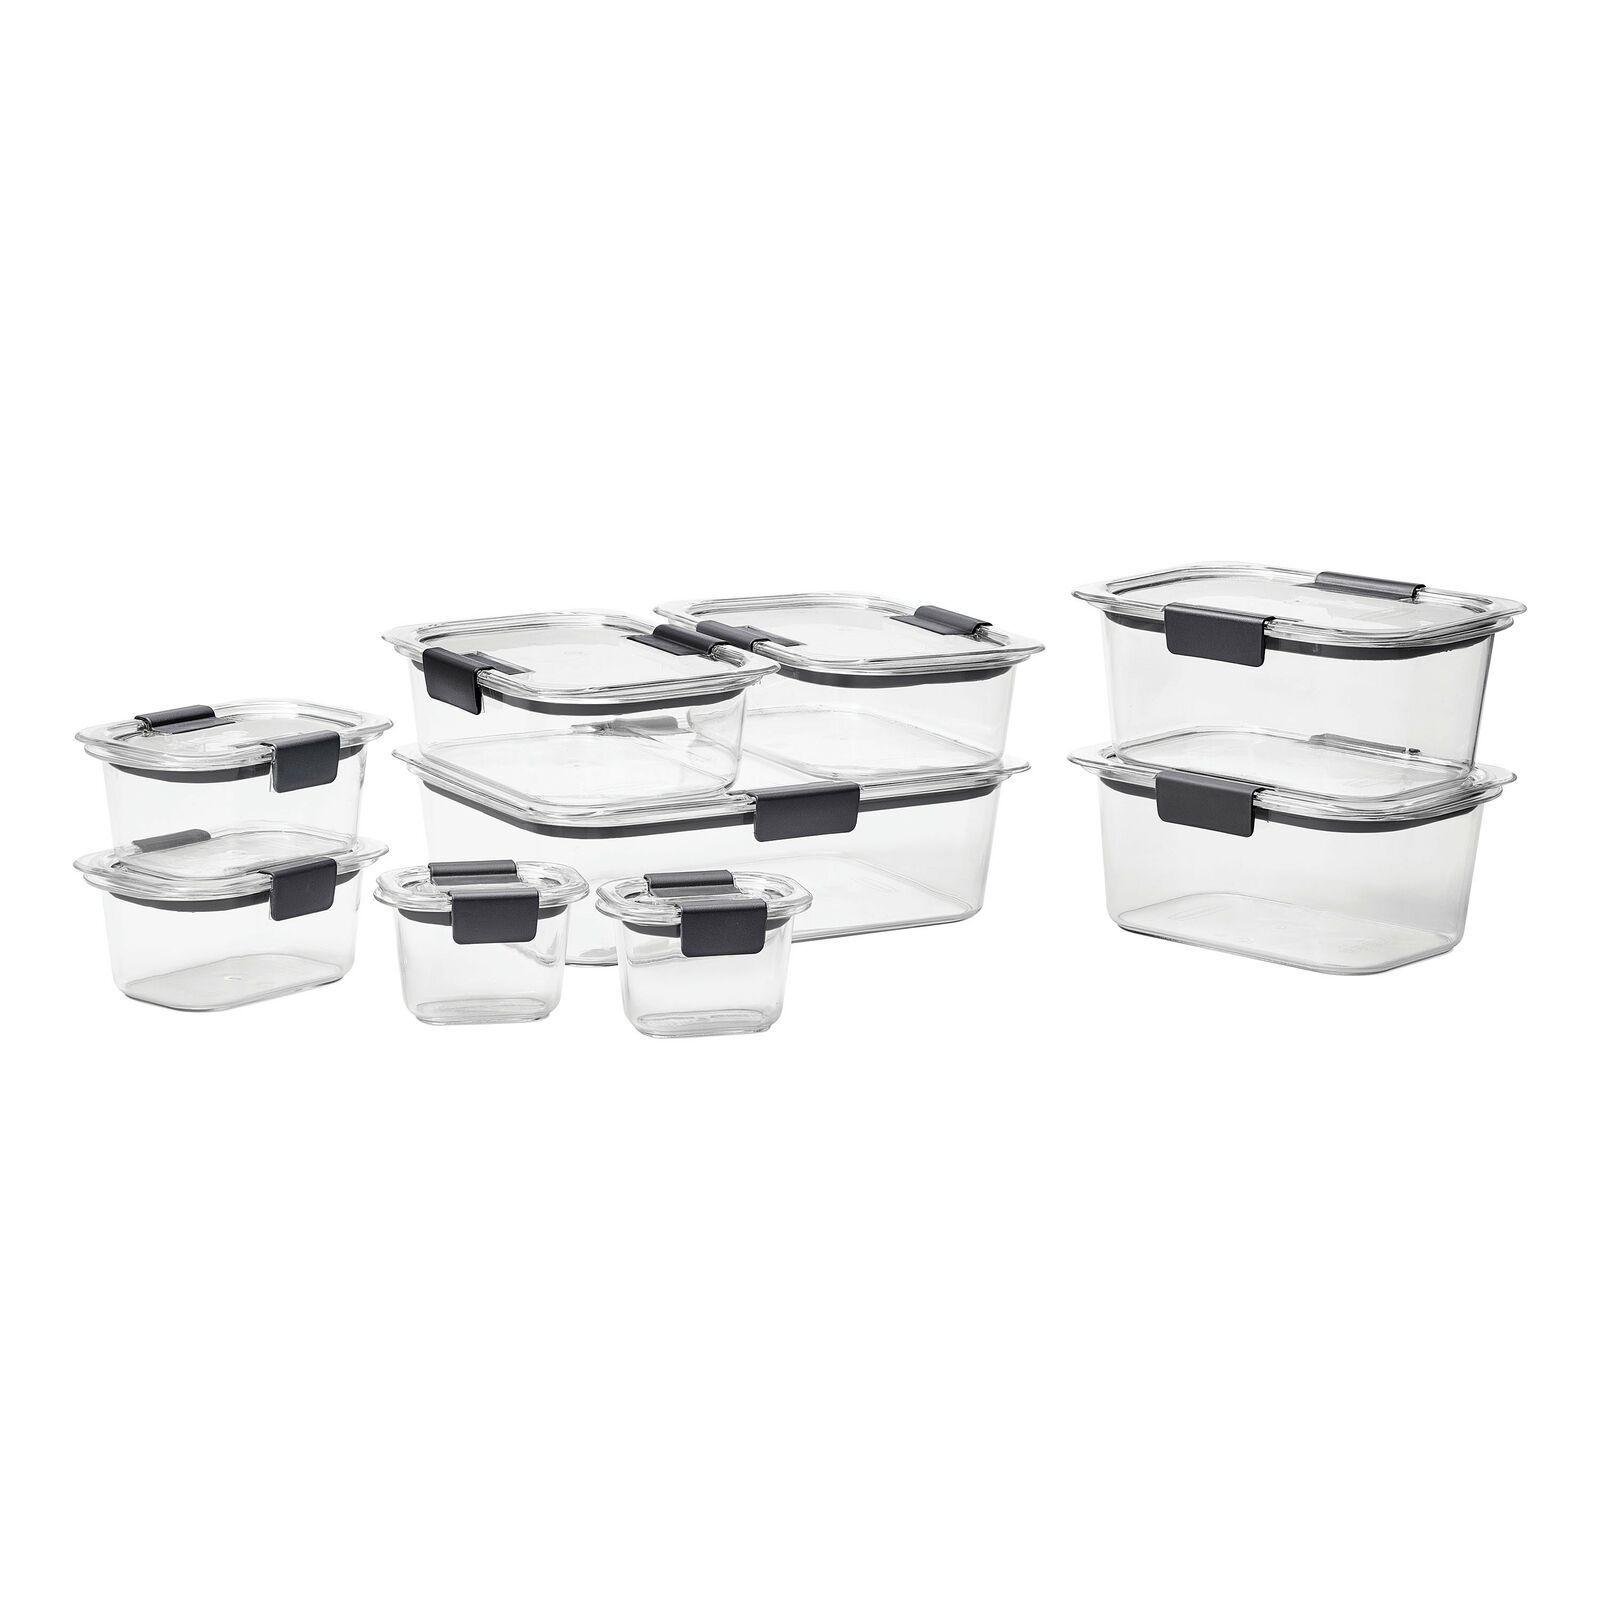 Rubbermaid Brilliance Food Storage Container Set, 18-piece, Clear 1